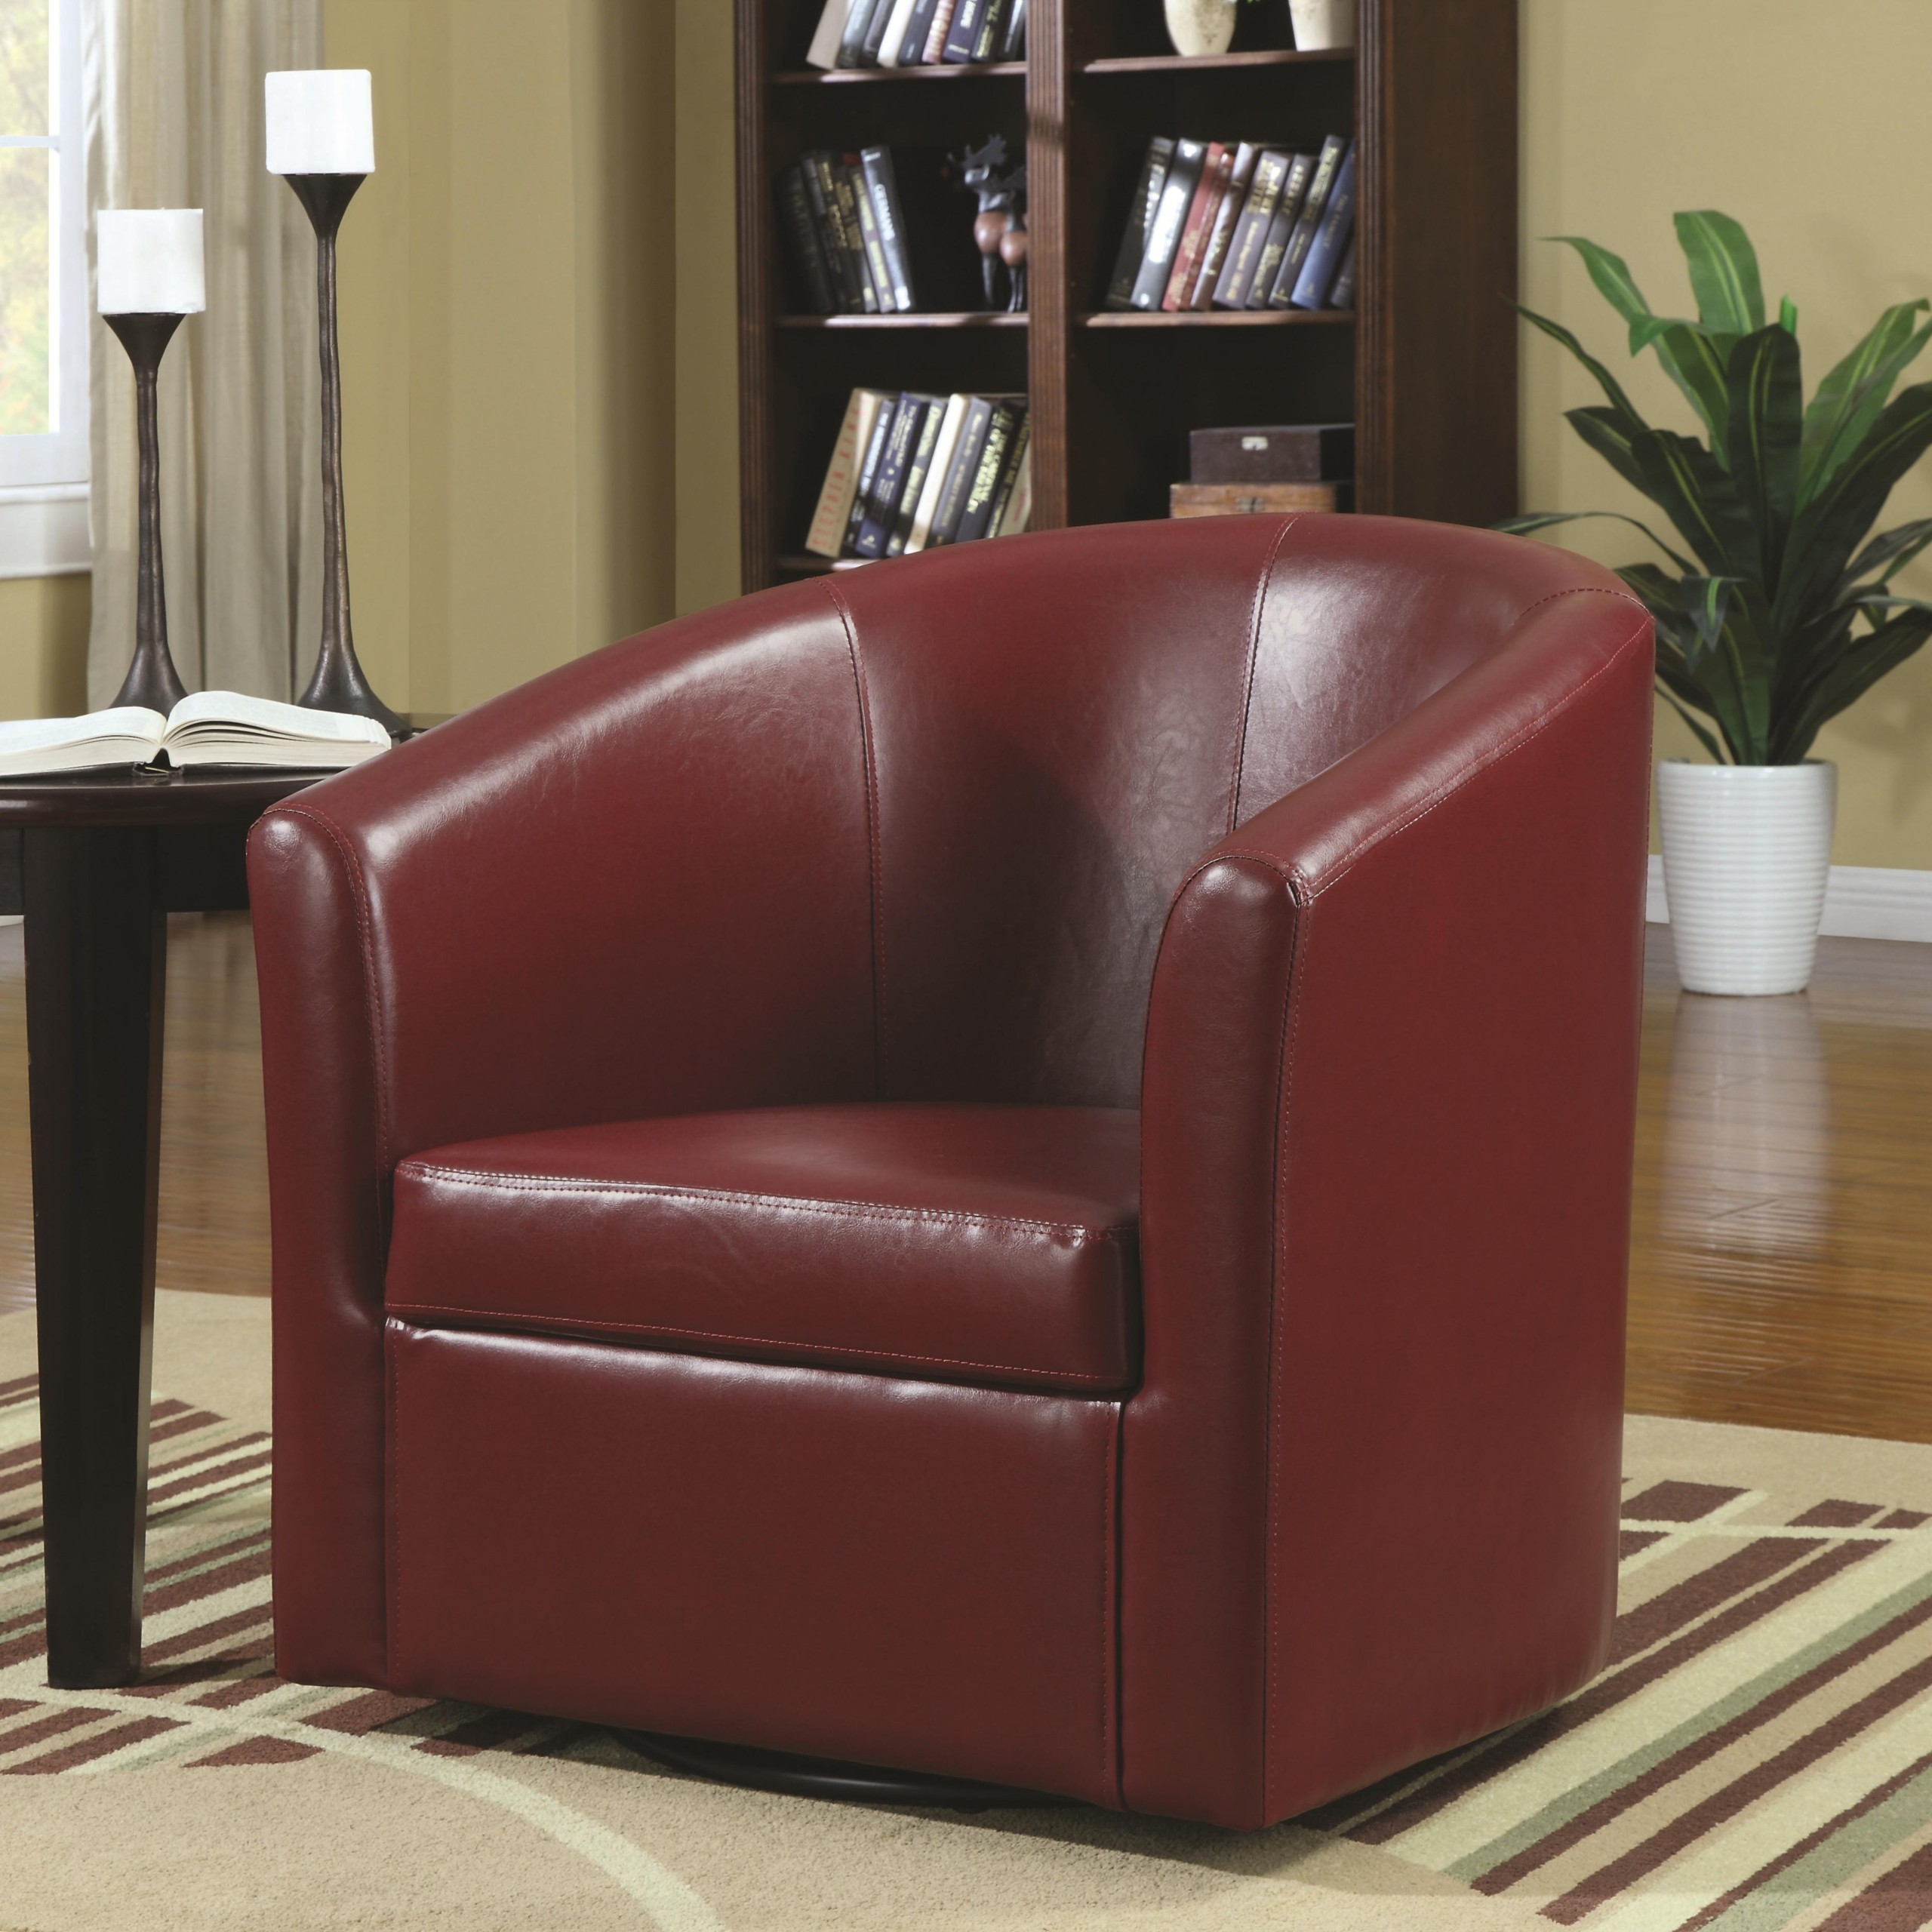 Charmant Barrel Back Chair Color: Red